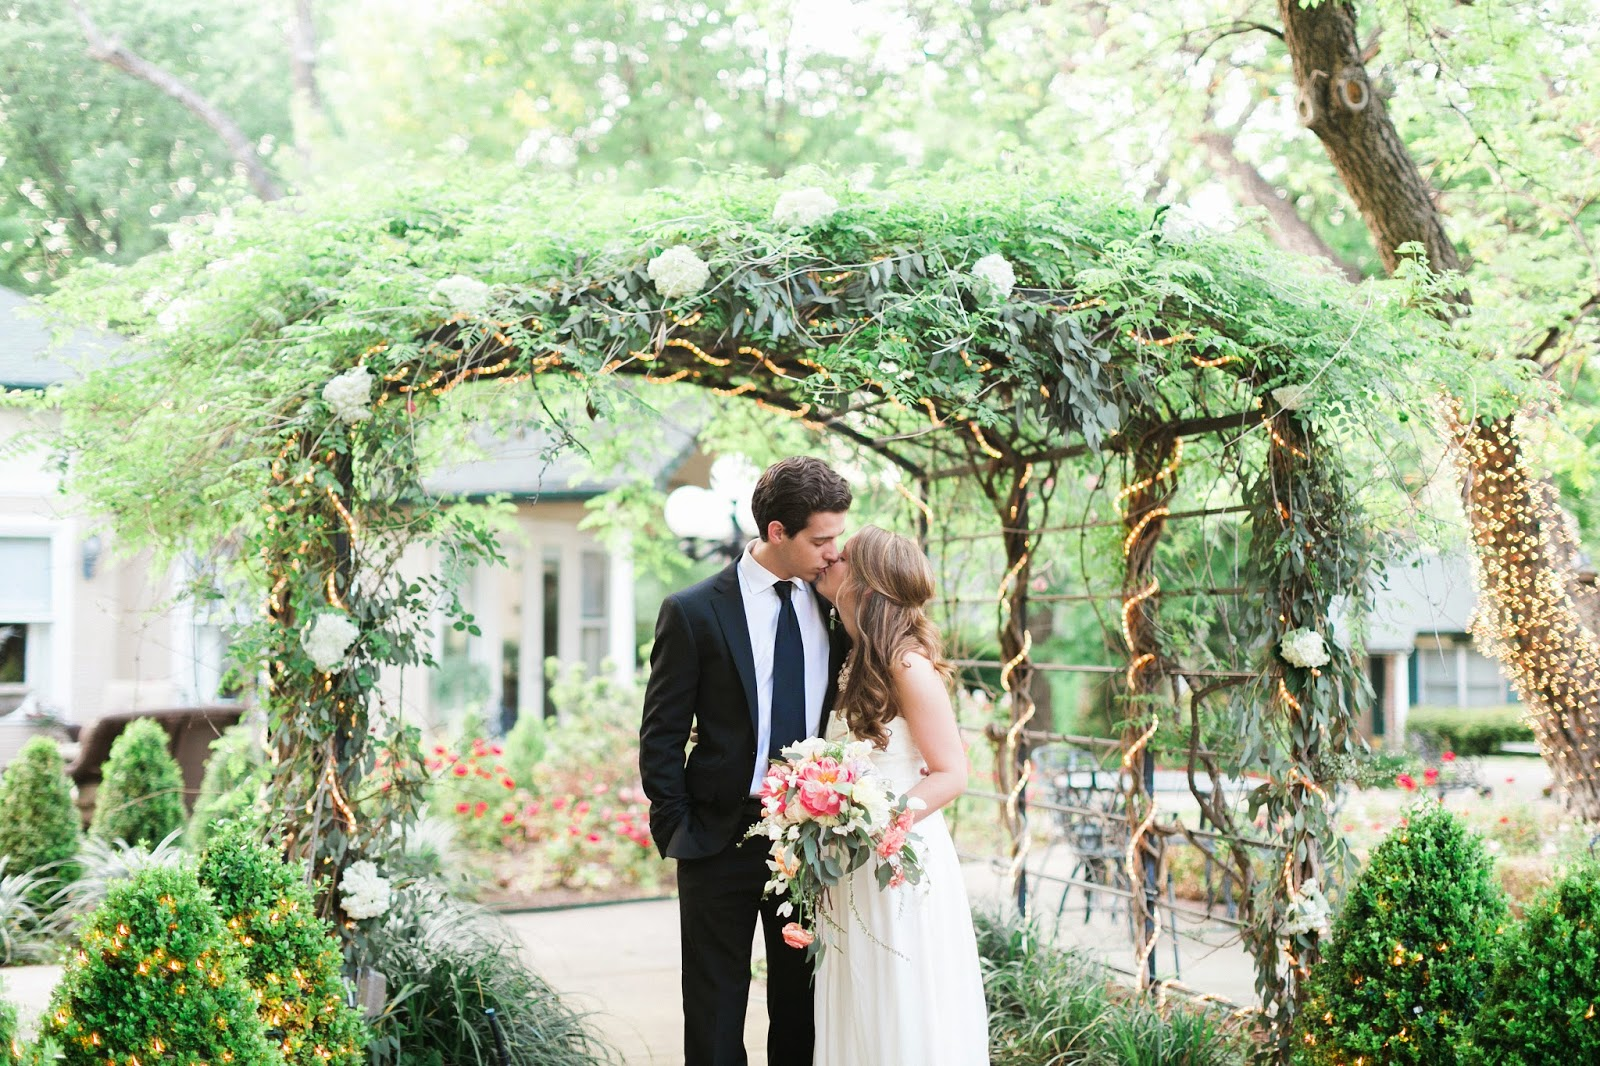 The Blooming Bride, DFW, Fort Worth, Texas, Wedding Flowers, natural wedding, sanford house